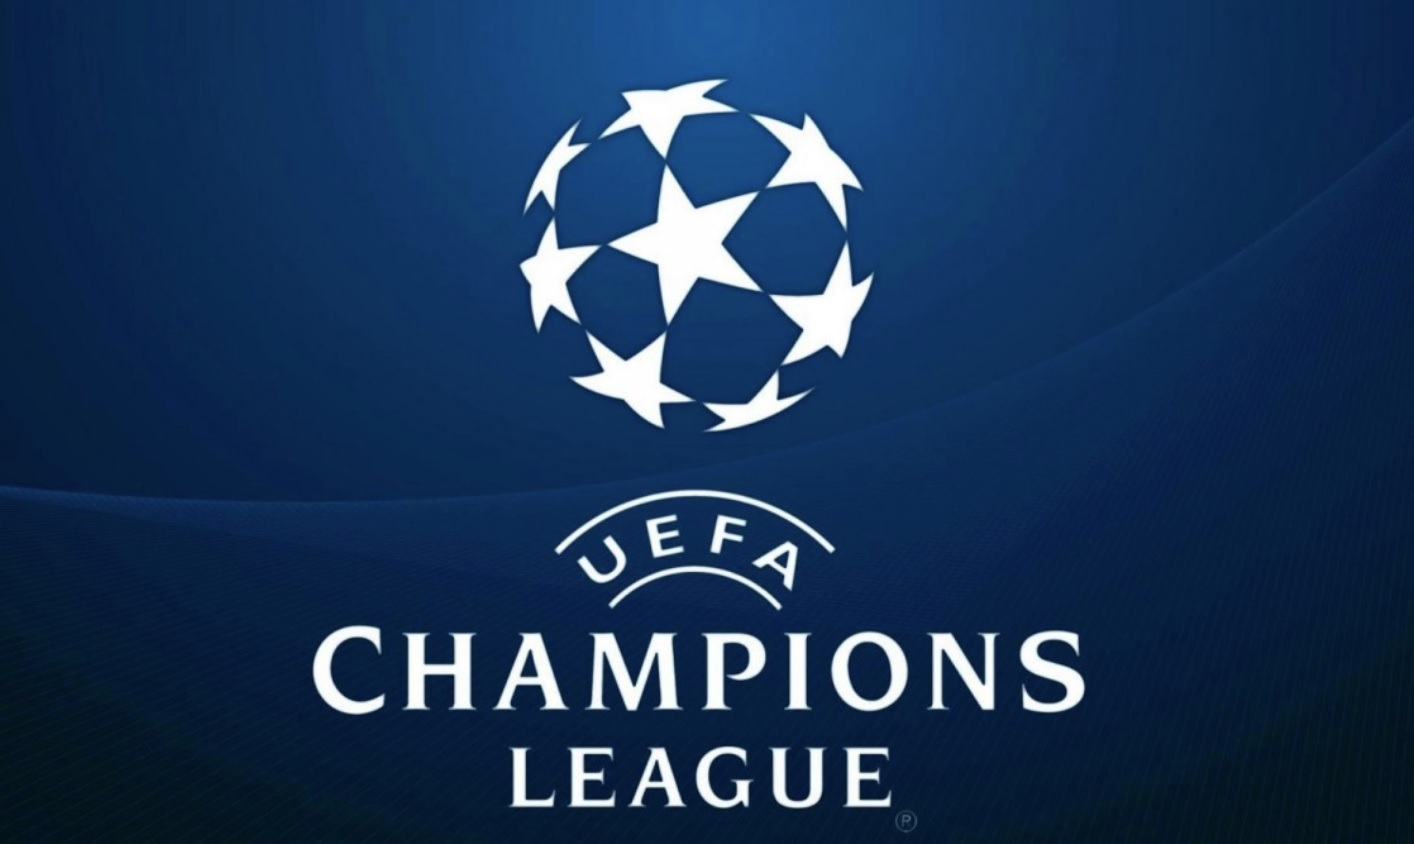 Speltips Champions League!